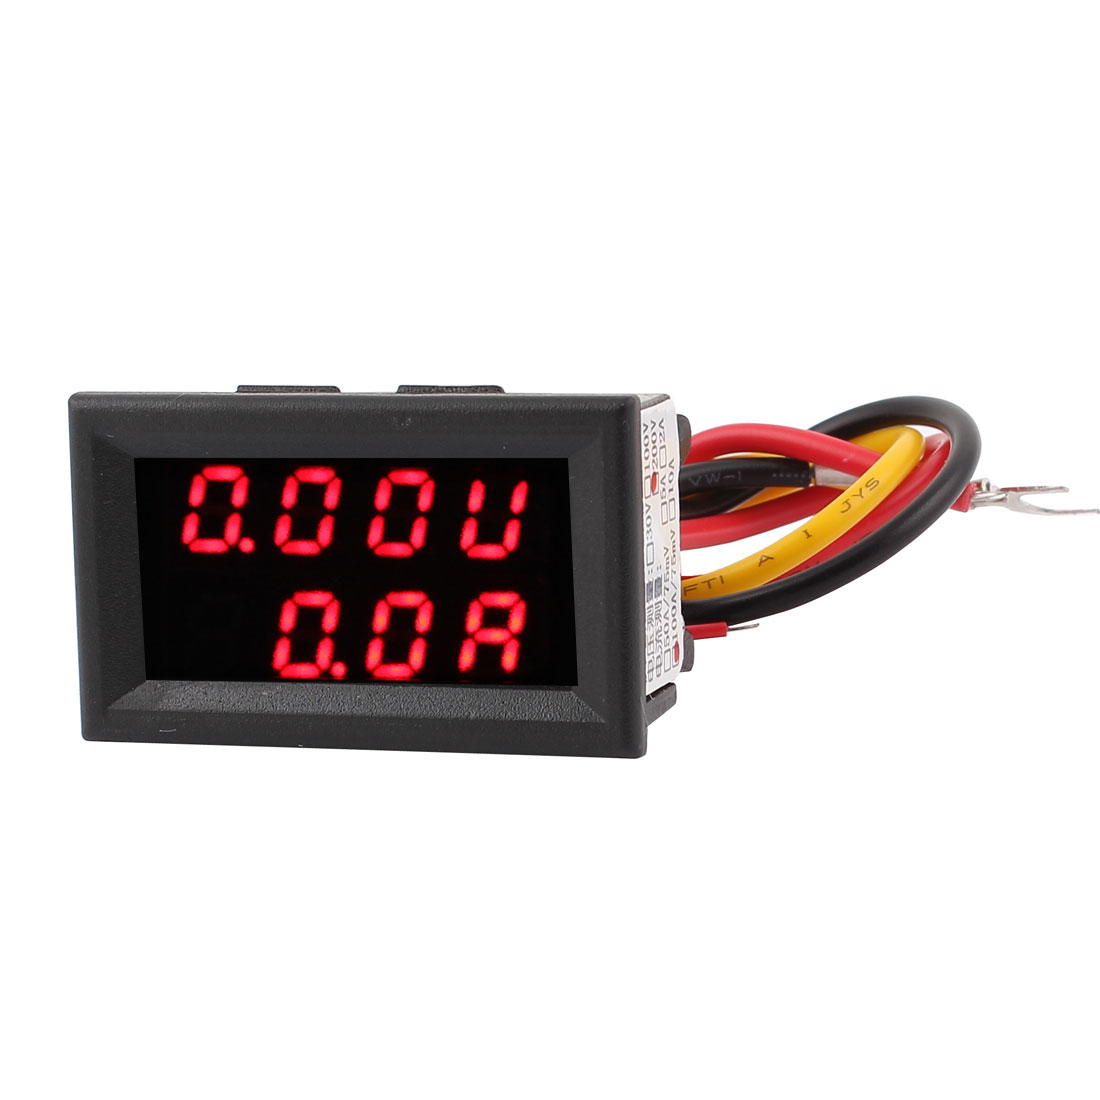 DC 0-200V 0-100A Red LED Dual Digital Display Panel Voltmeter Ammeter Meter